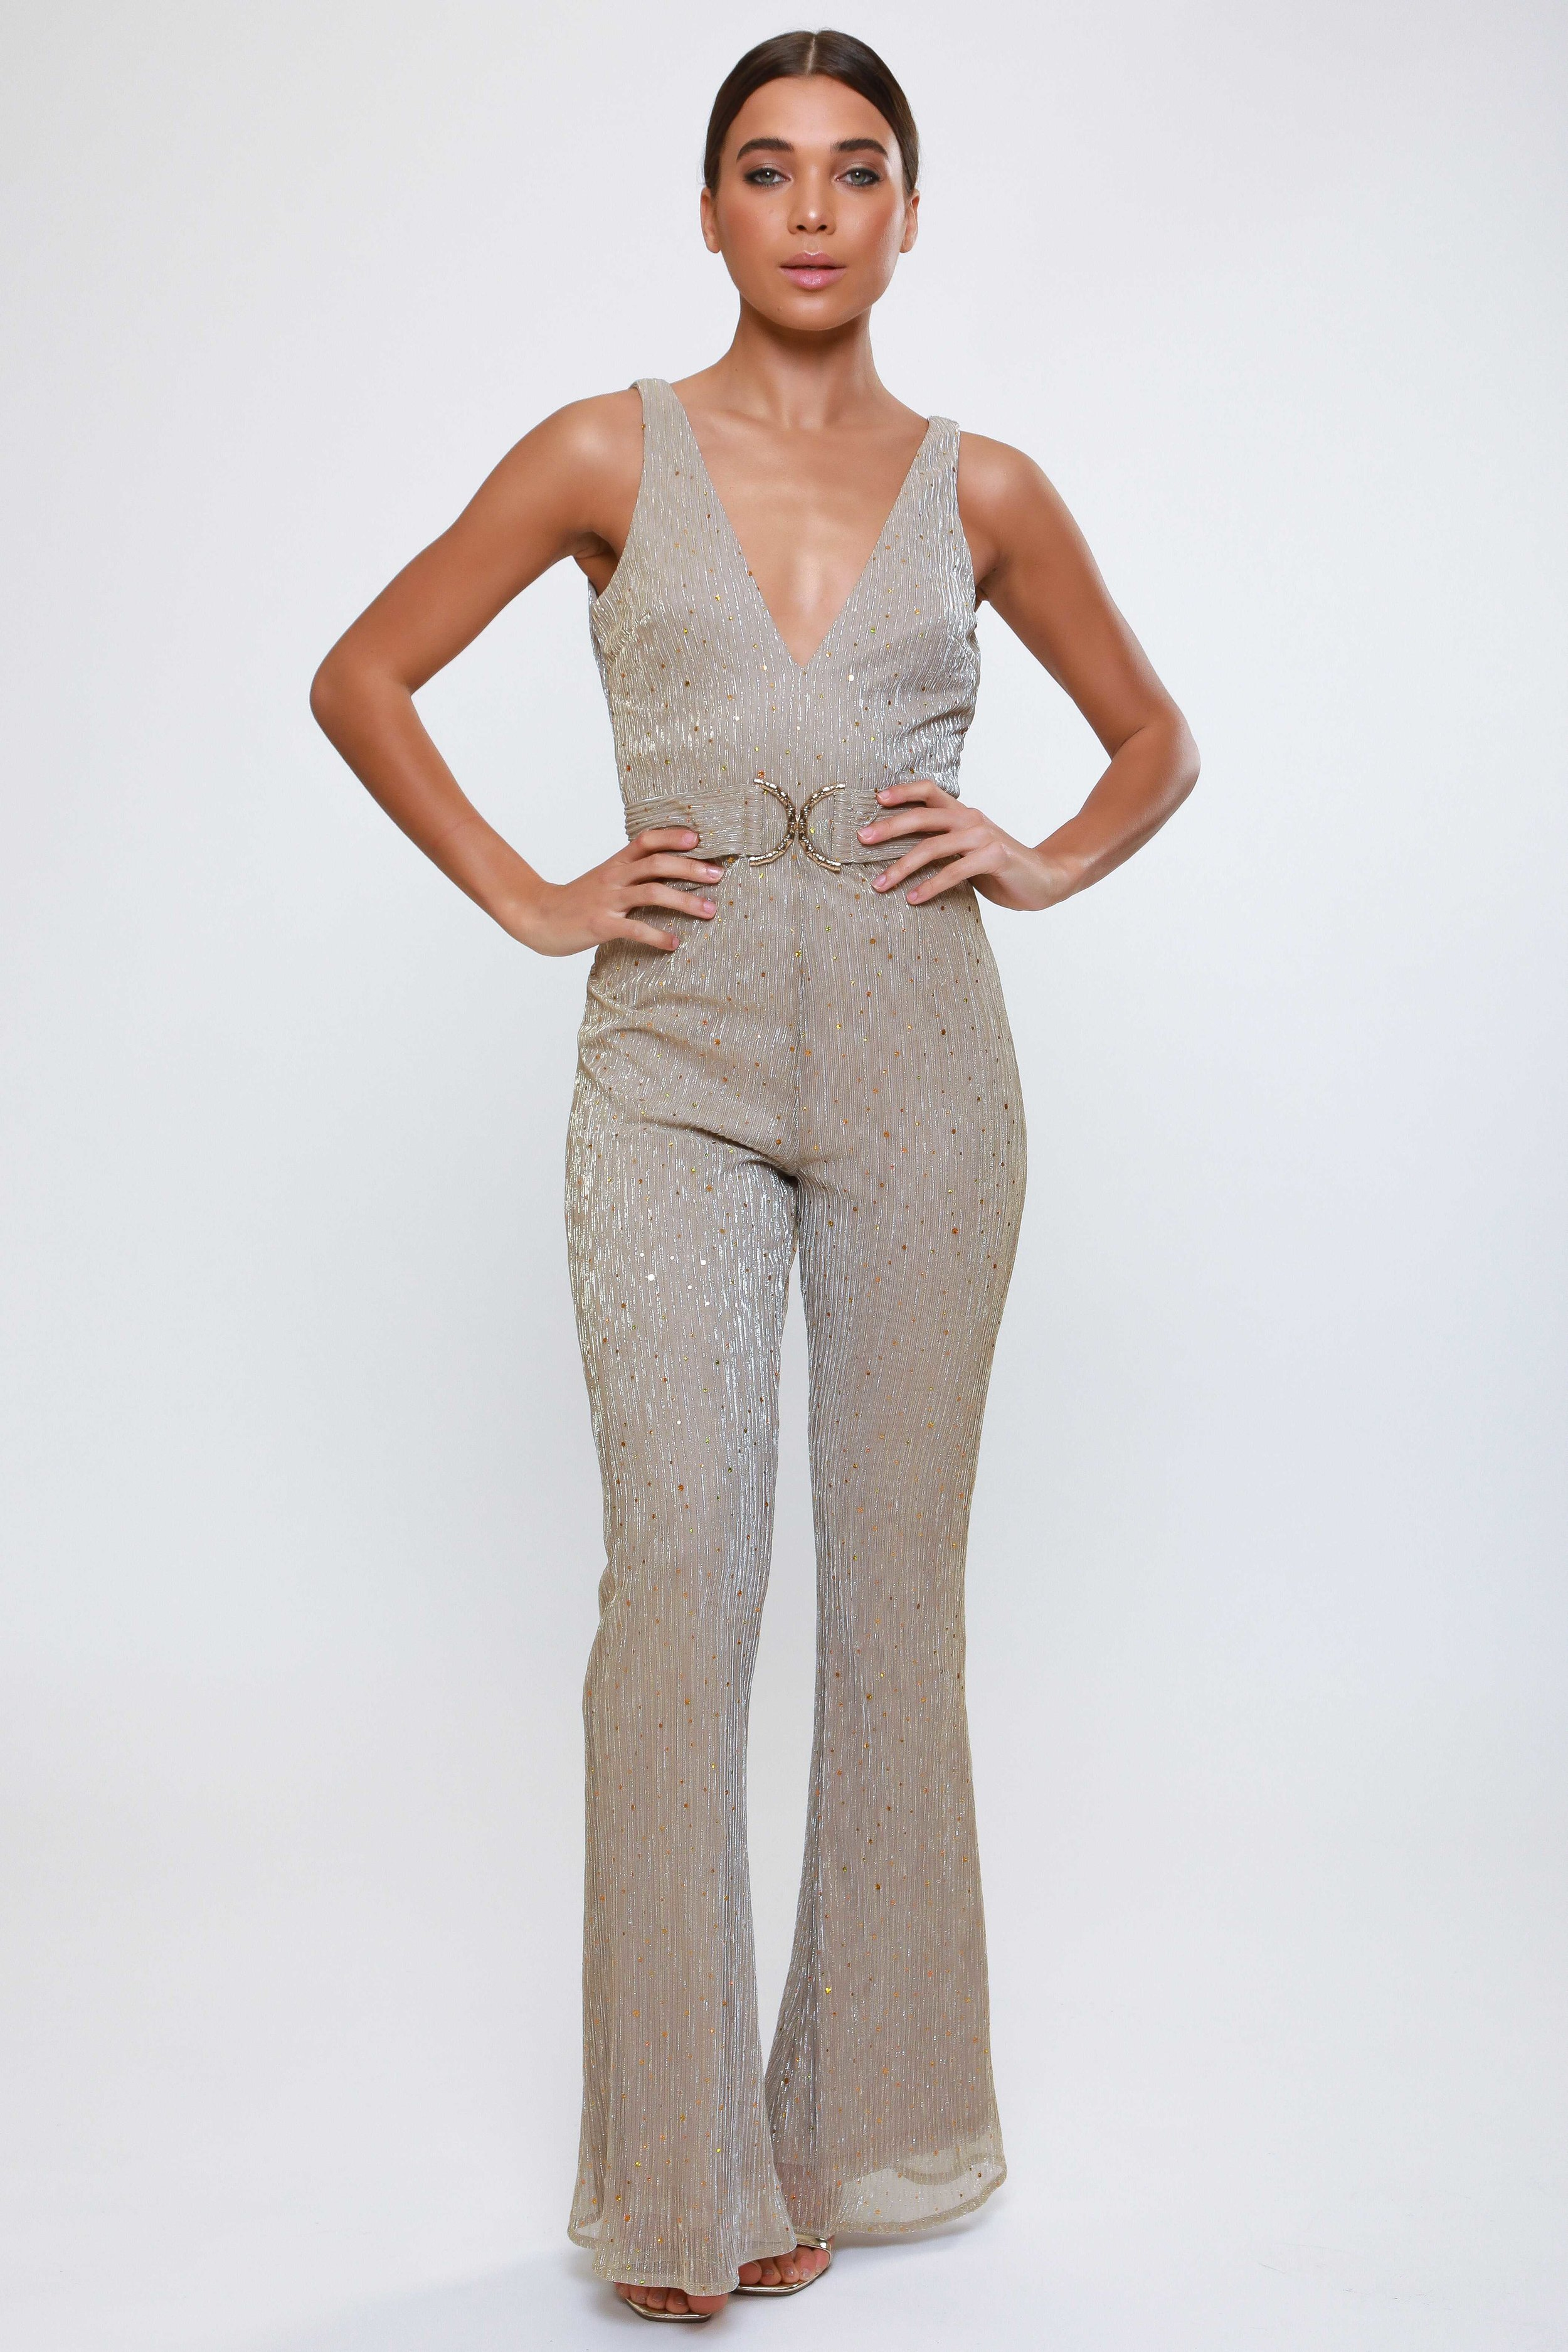 Metallic Plunge Flared Jumpsuit  with Hardware Belt   £65.00